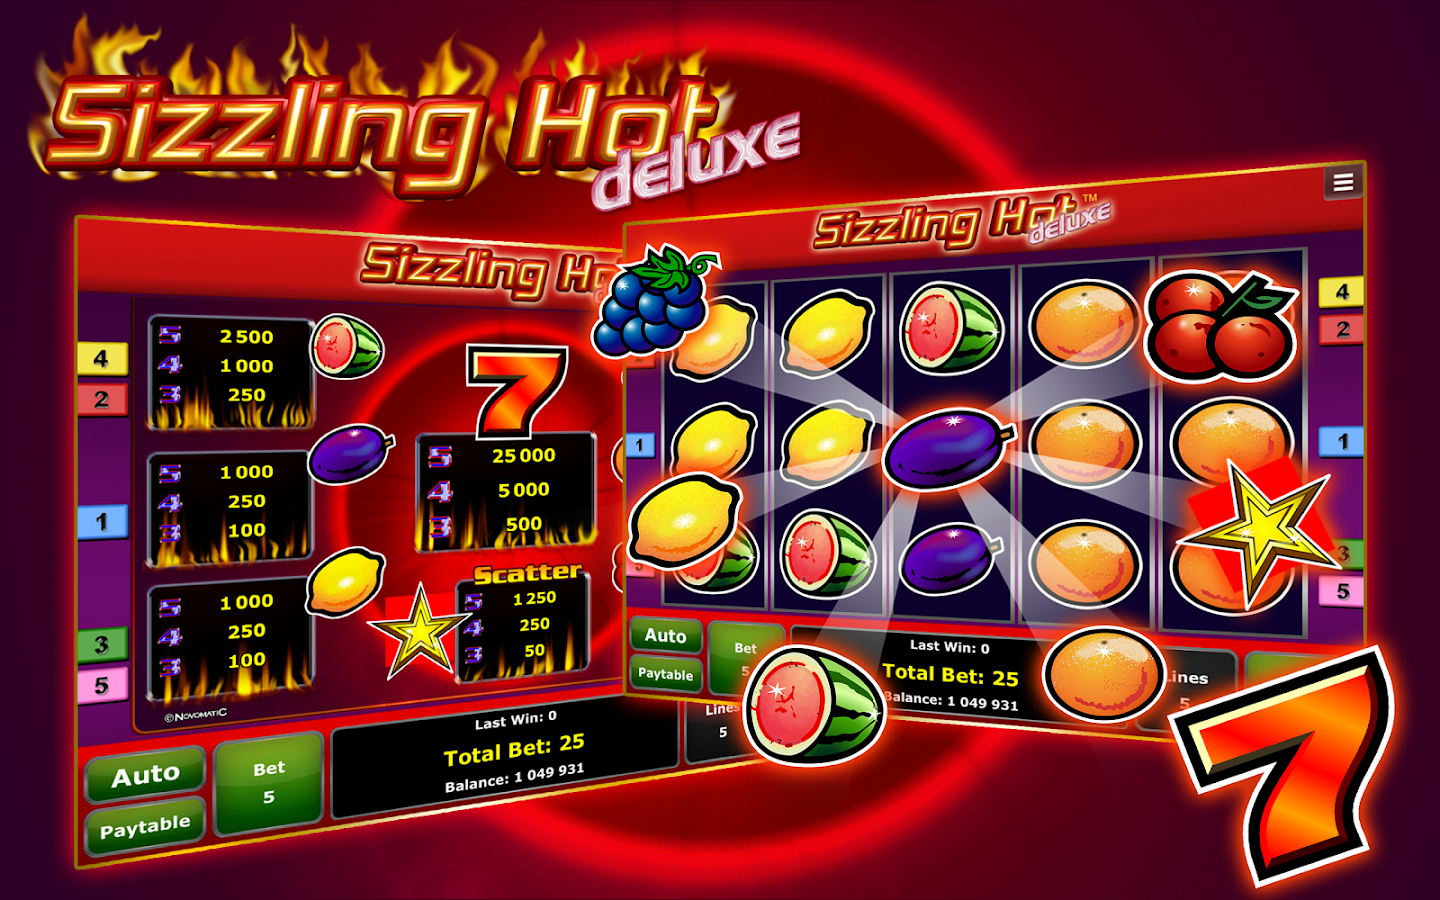 bonus online casino sizzling hot deluxe download